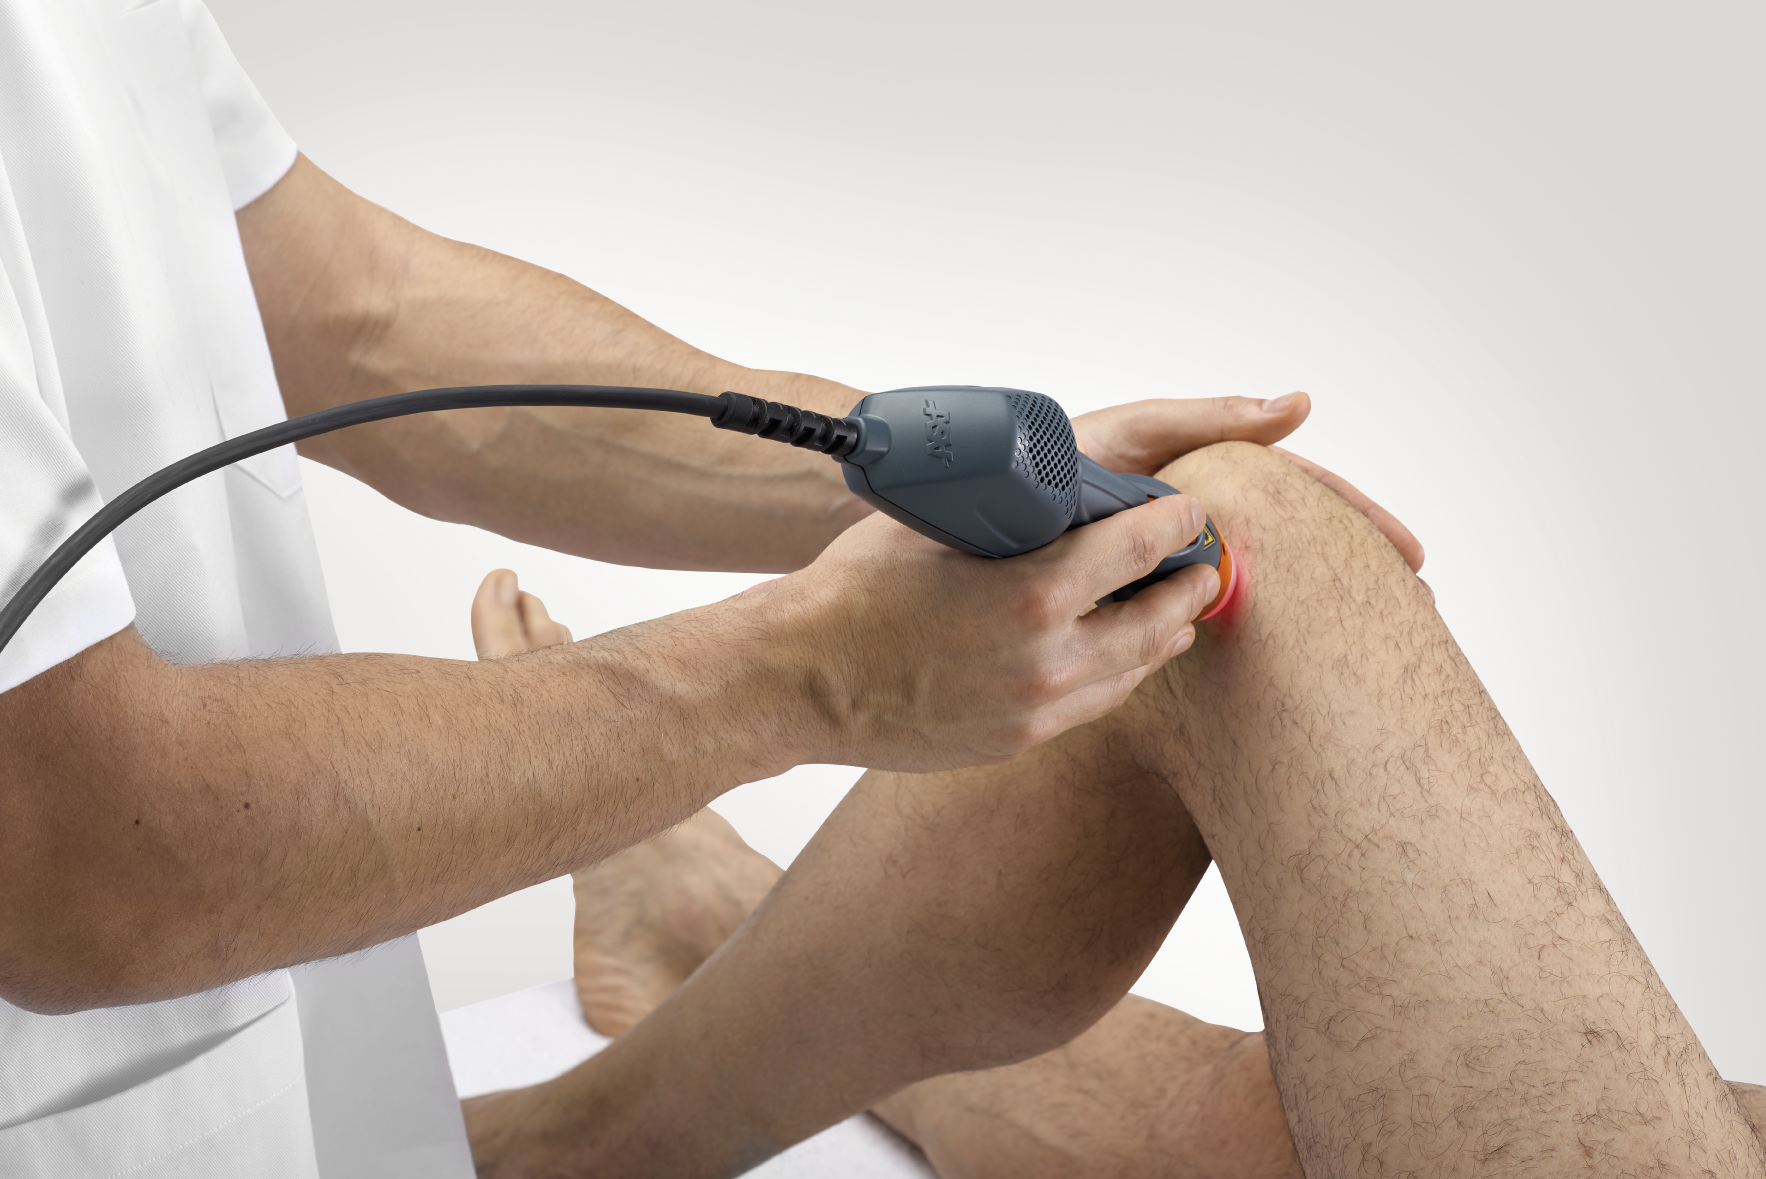 Mphi 75 - knee laser treatment